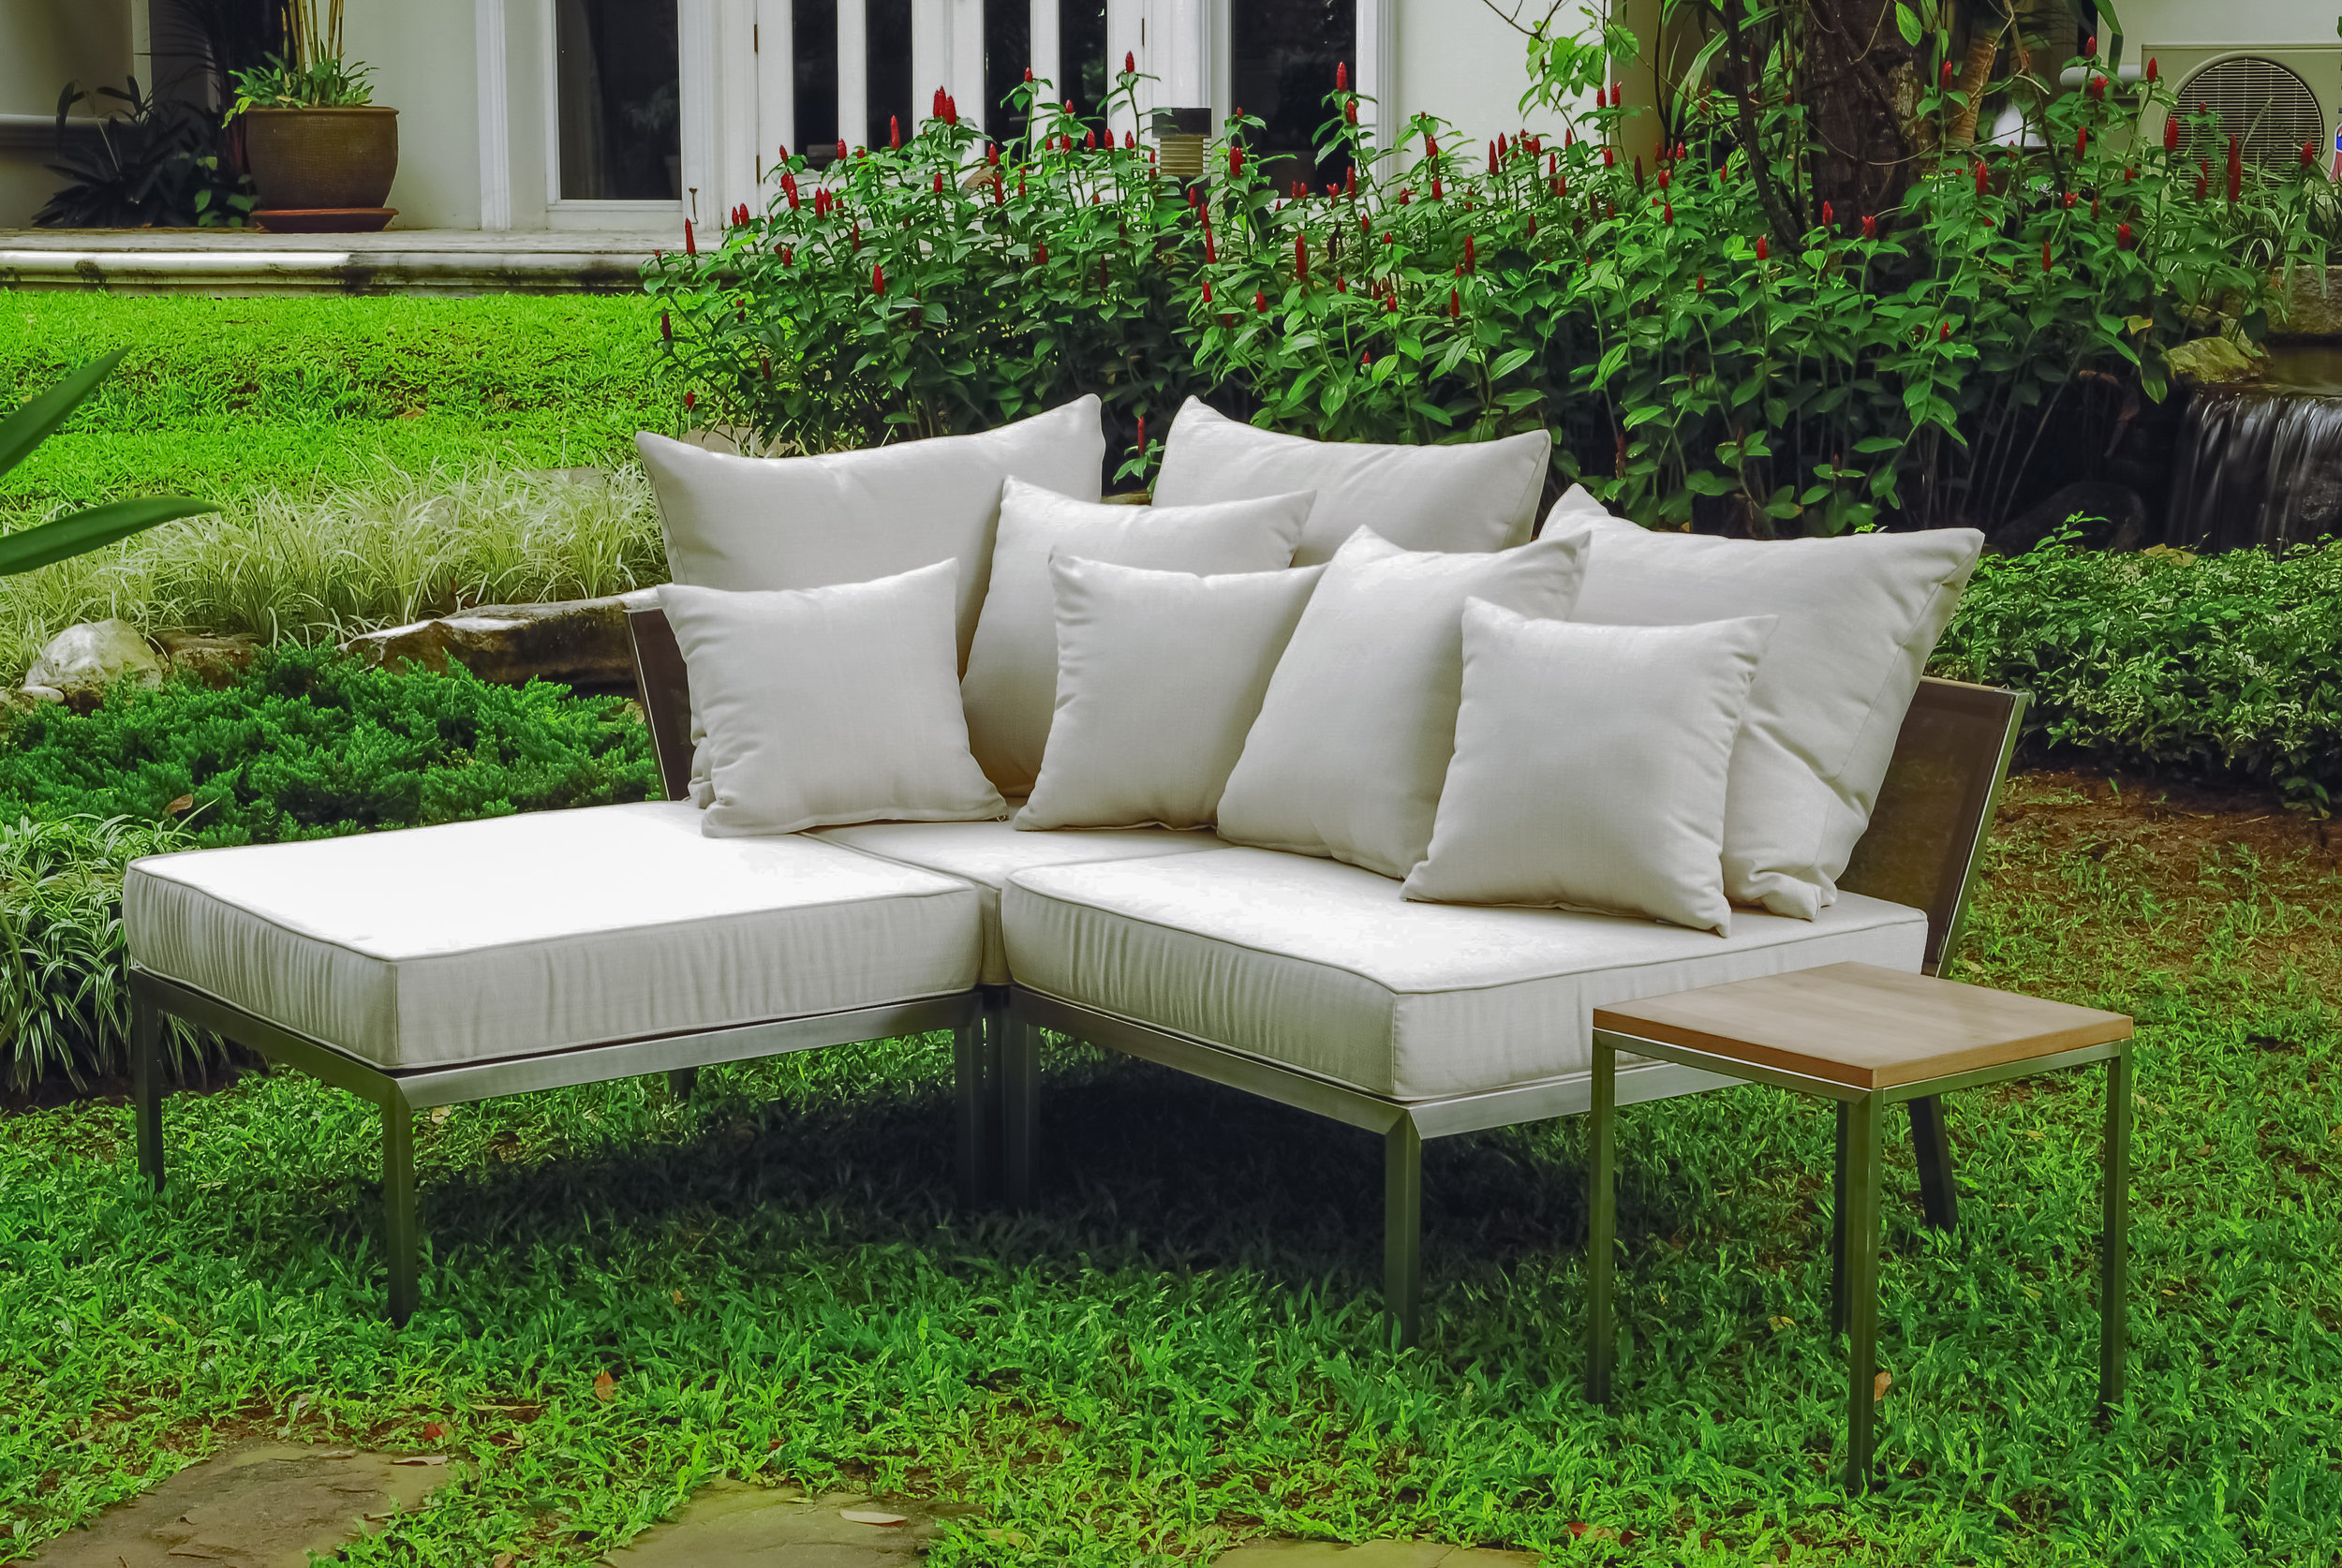 Haven 3 piece Stainles Steel Modular Plush Lounger with matching Core teak side table copy.jpg